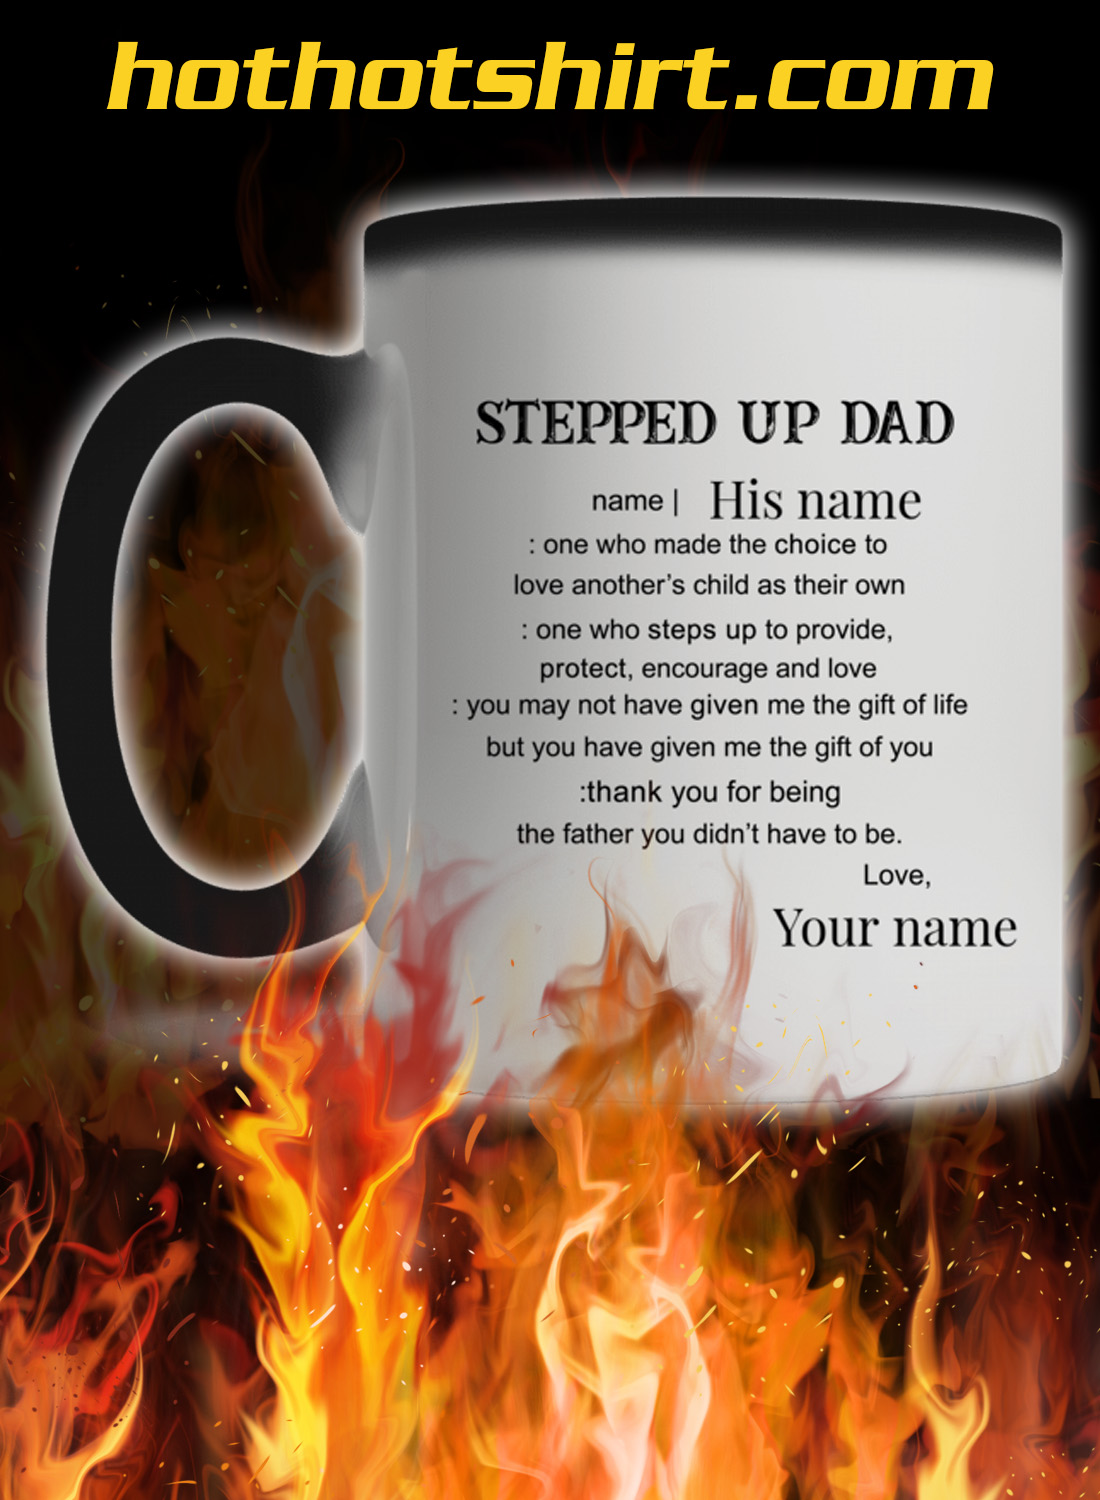 Personalized custom name Stepped up dad mug 1